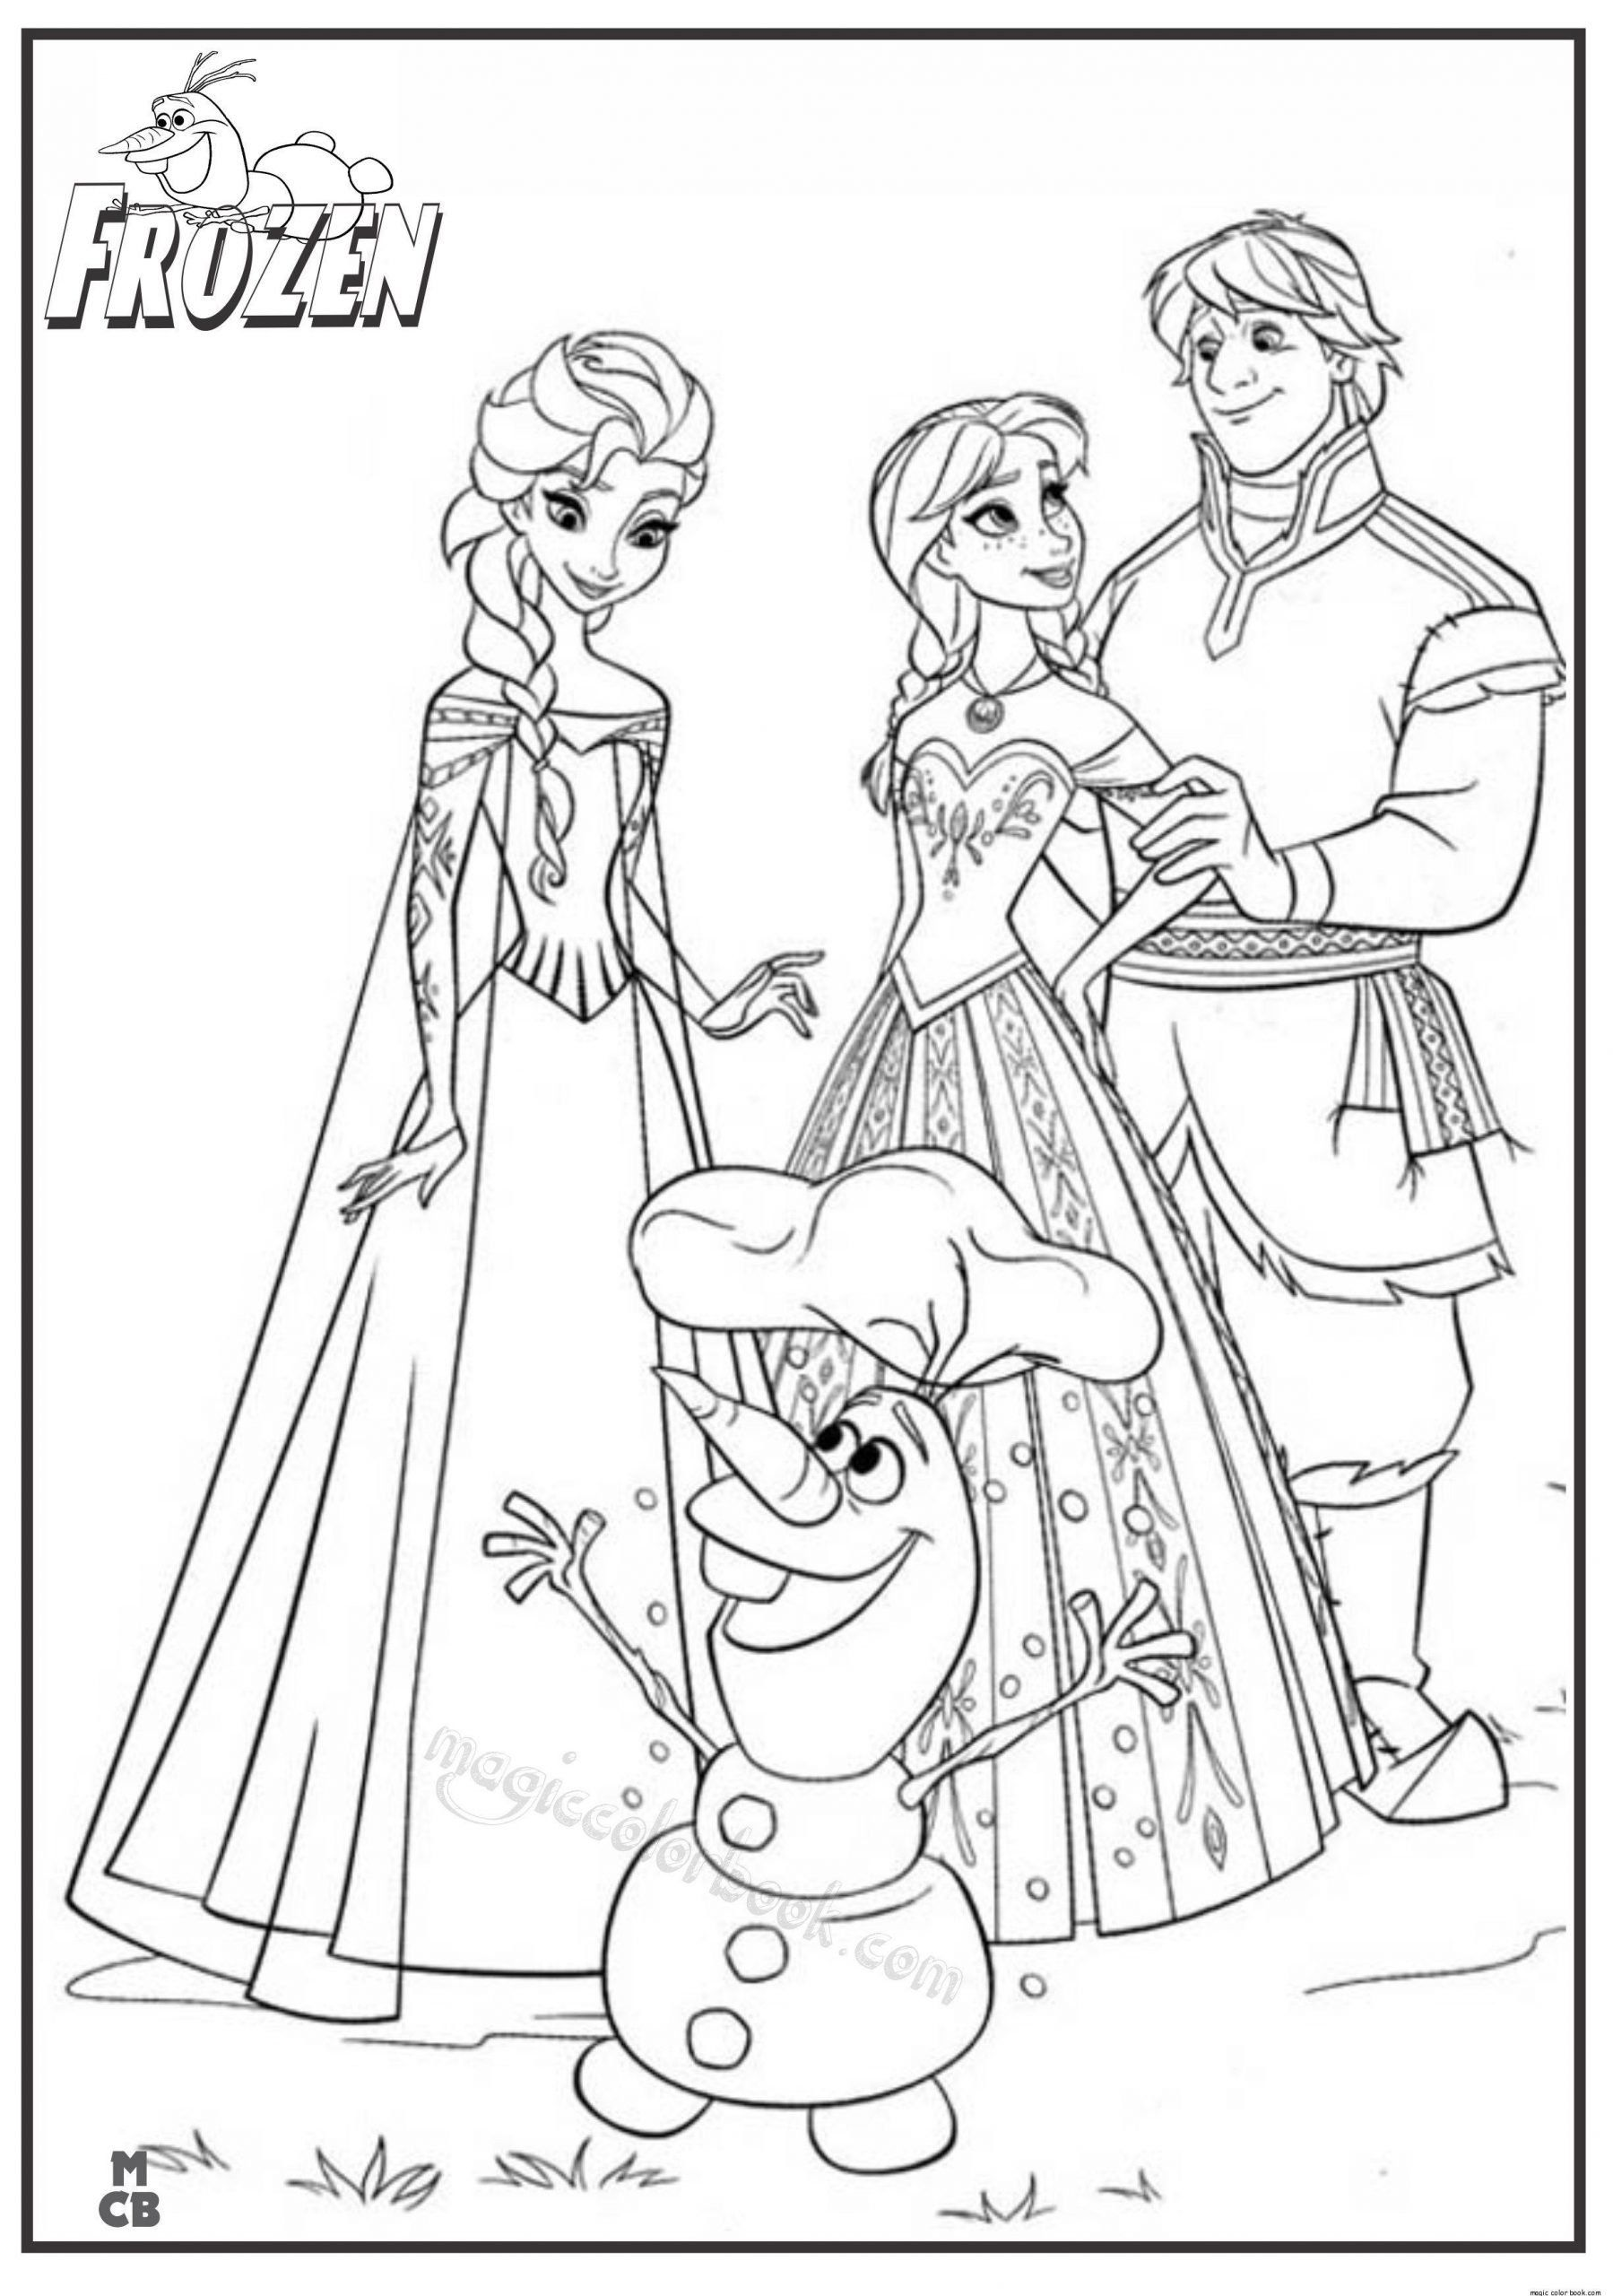 Frozen Coloring Pages Free 24 Excellent Picture Of Frozen Coloring Pages Free Elsa Coloring Pages Disney Princess Coloring Pages Disney Coloring Pages